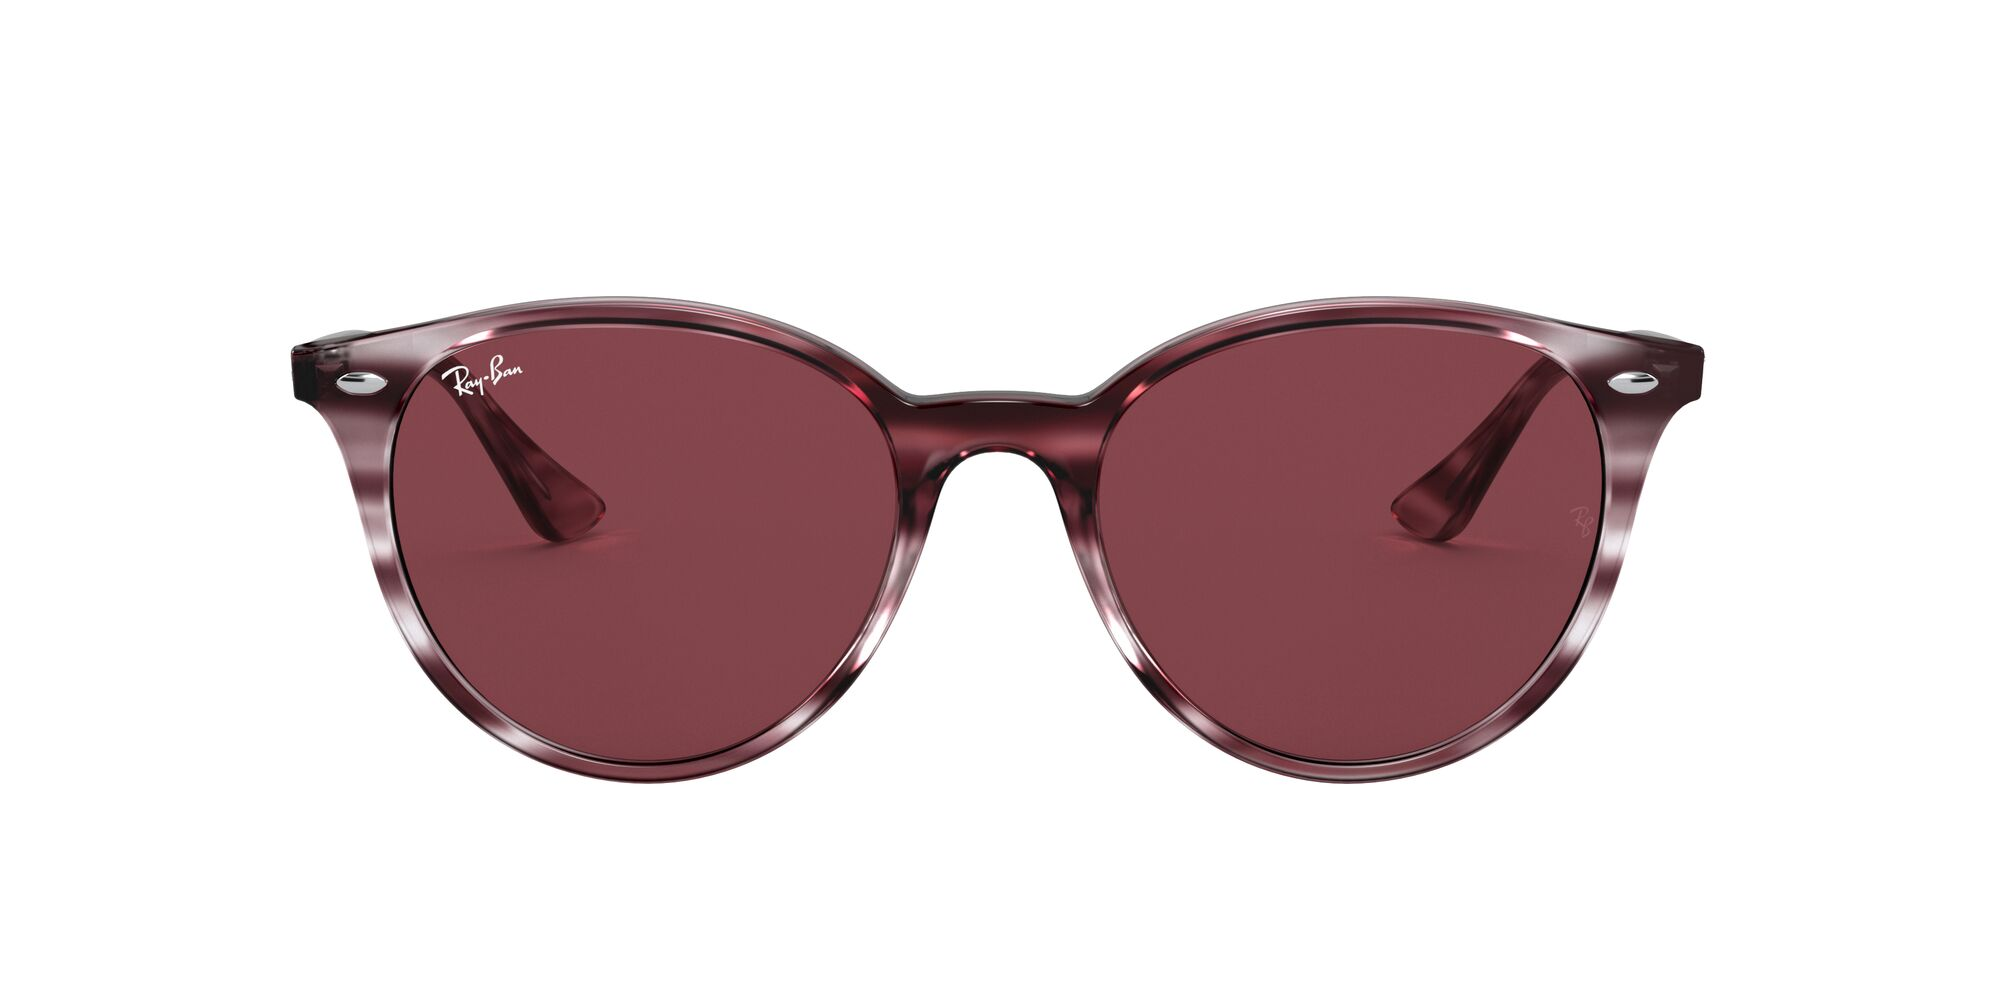 Front Ray-Ban Ray-Ban 0RB4305 643175 53/19 Rood, Bruin/Paars